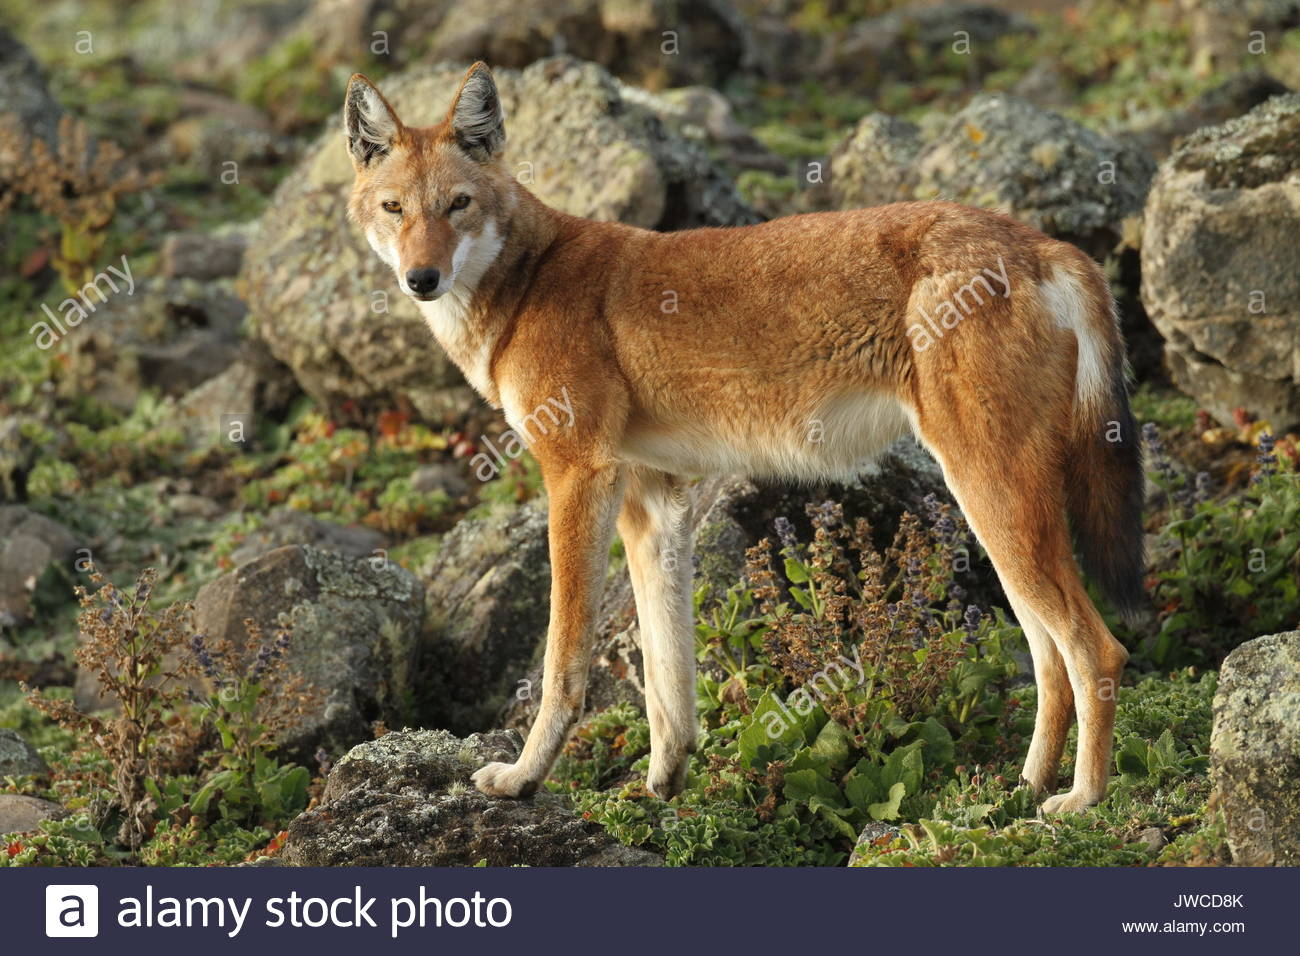 Un avviso lupo etiope,Canis simensis,sorge a Bale Mountains National Park. Immagini Stock